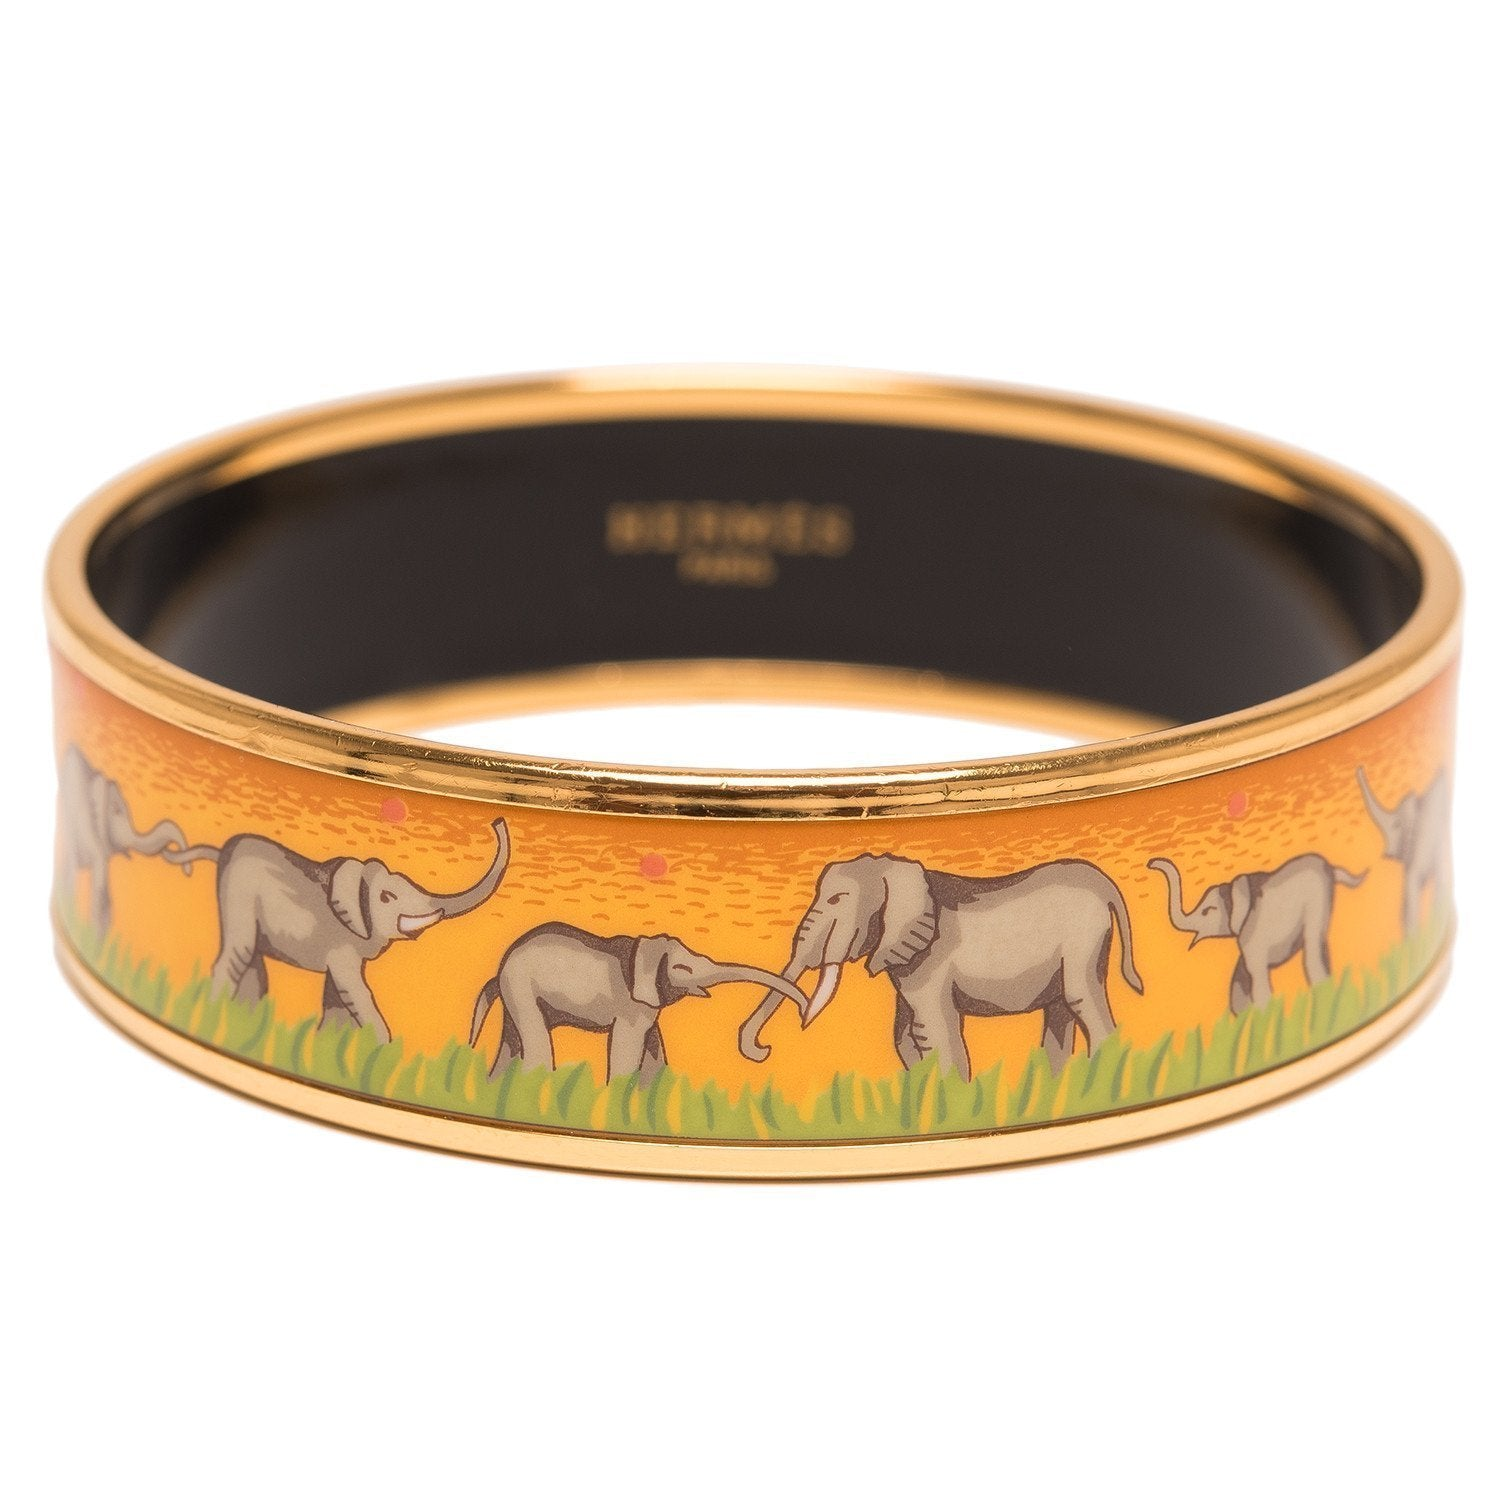 Hermes Elephants Grazing Wide Printed Enamel Bracelet Pm 65 Accessories